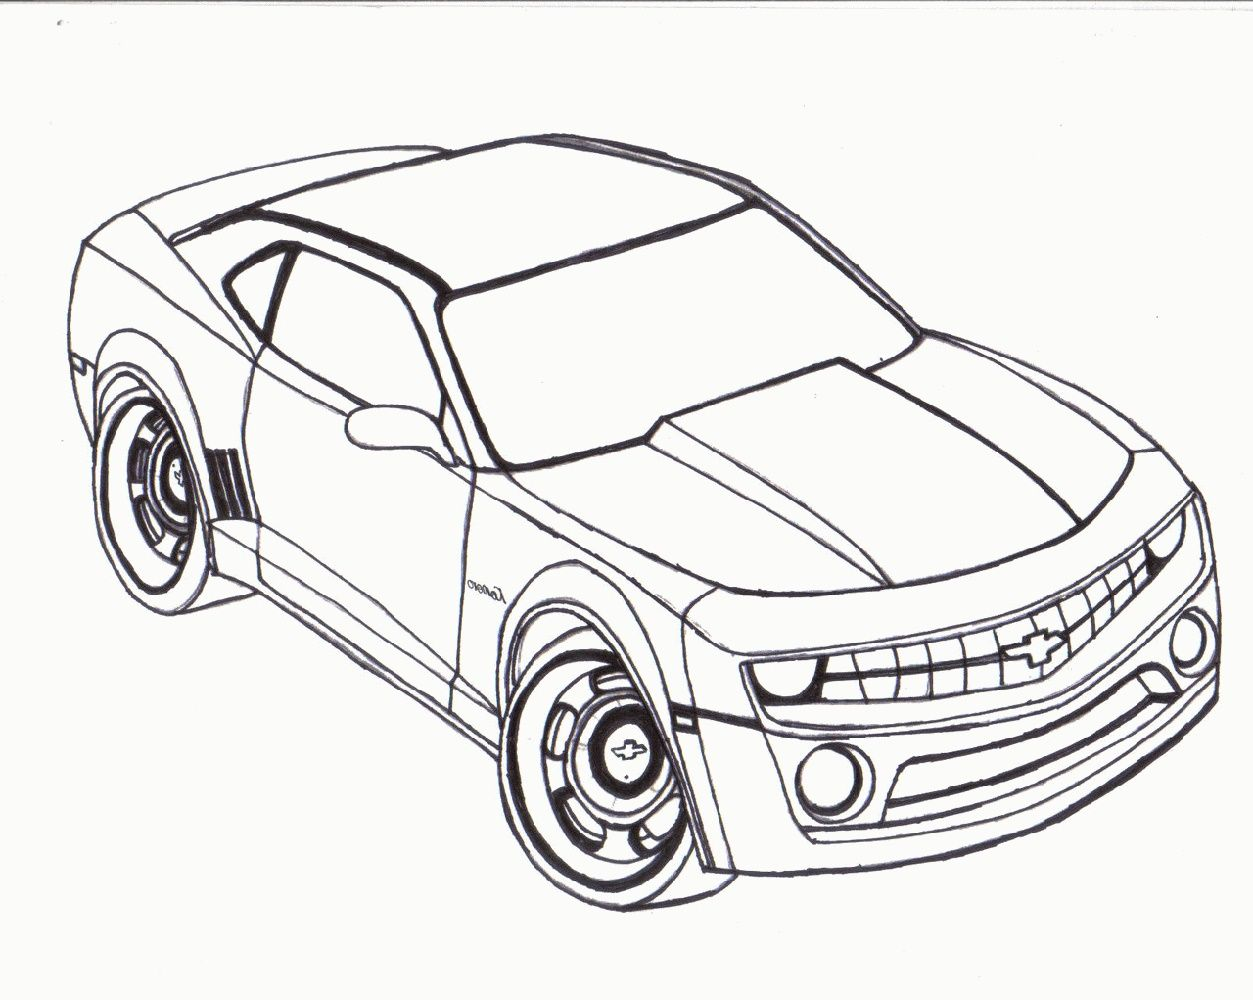 Camaro Coloring Pages K5 Worksheets In 2020 Race Car Coloring Pages Cars Coloring Pages Coloring Pages